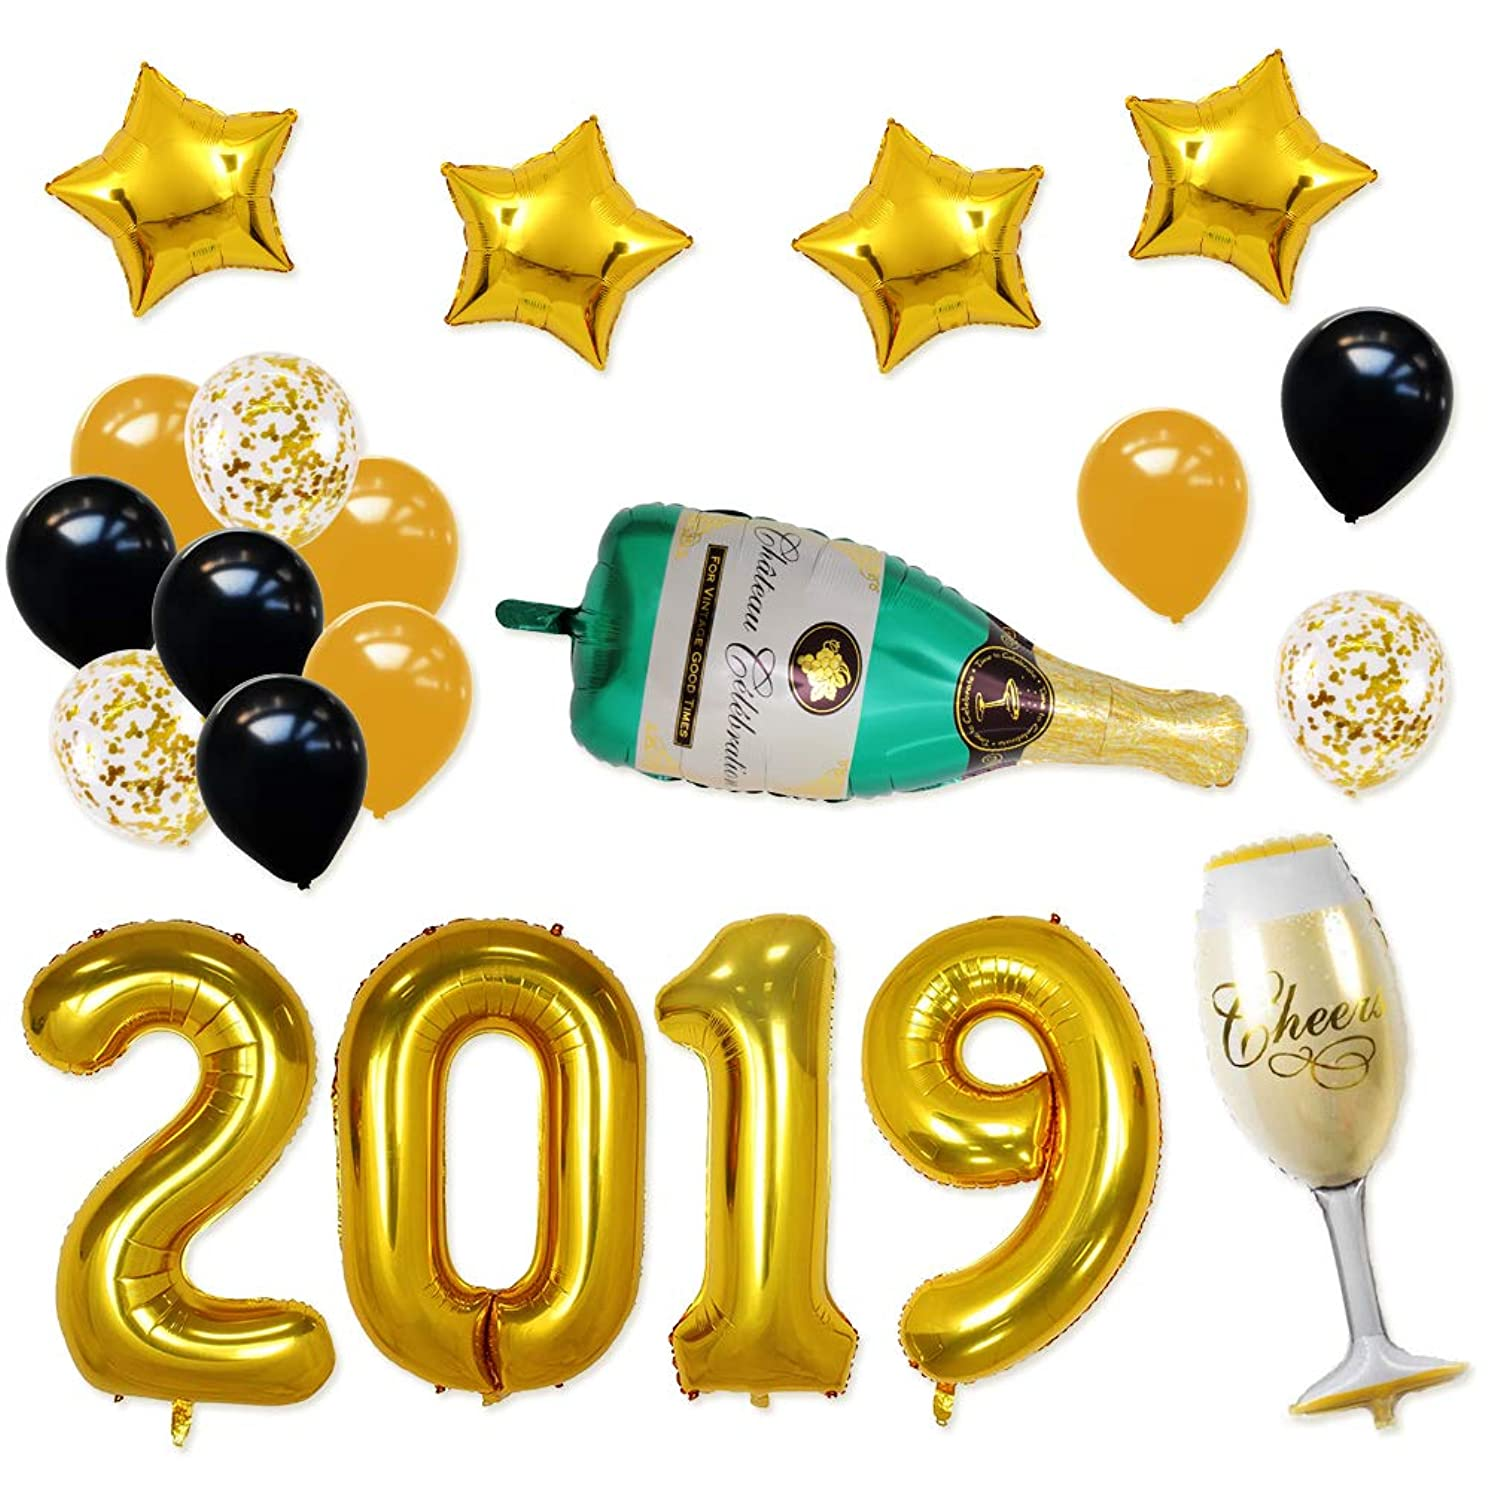 BALONAR 40INCH 2019 Gold Happy New Year Banner Champagne Bottle and Flute Gold Confetti Balloons with 12inch Latex balloons Party Decorations